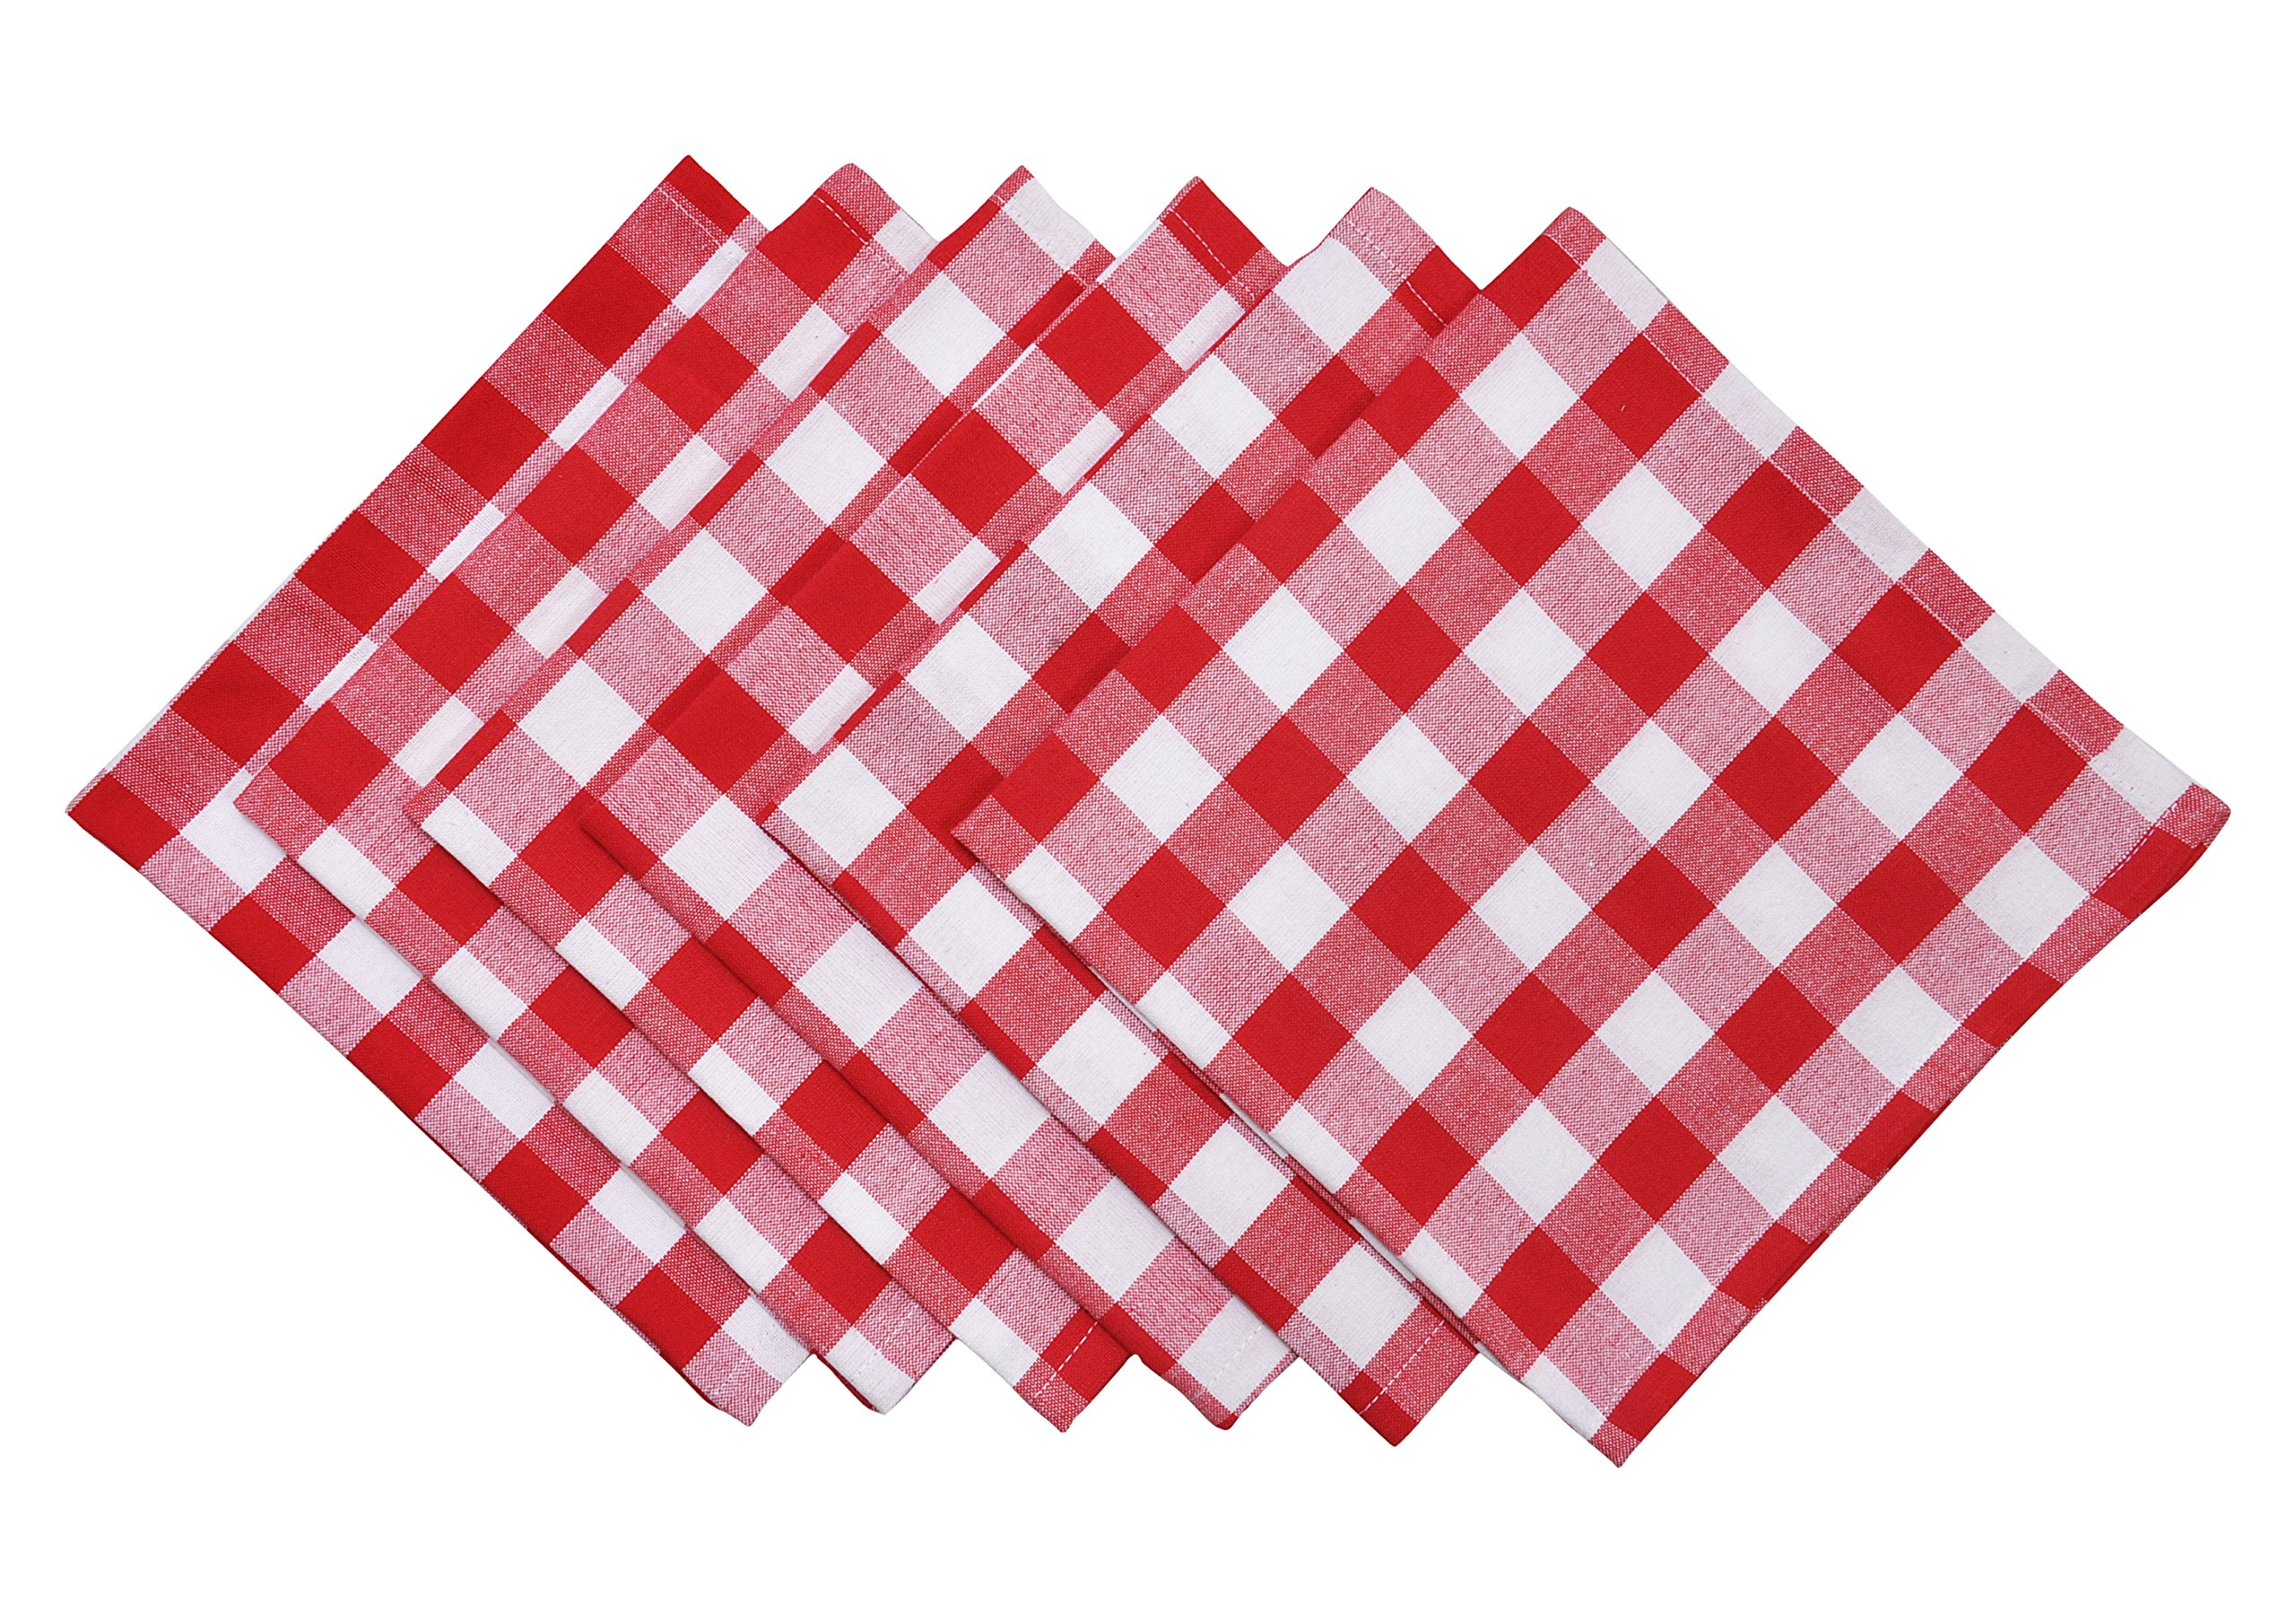 Yourtablecloth Buffalo Plaid 100% Cotton Cloth Checkered Dinner Table Napkins – Vibrant Colors – Soft & Super Absorbent Napkins 20 x 20 set of 6 Red and White